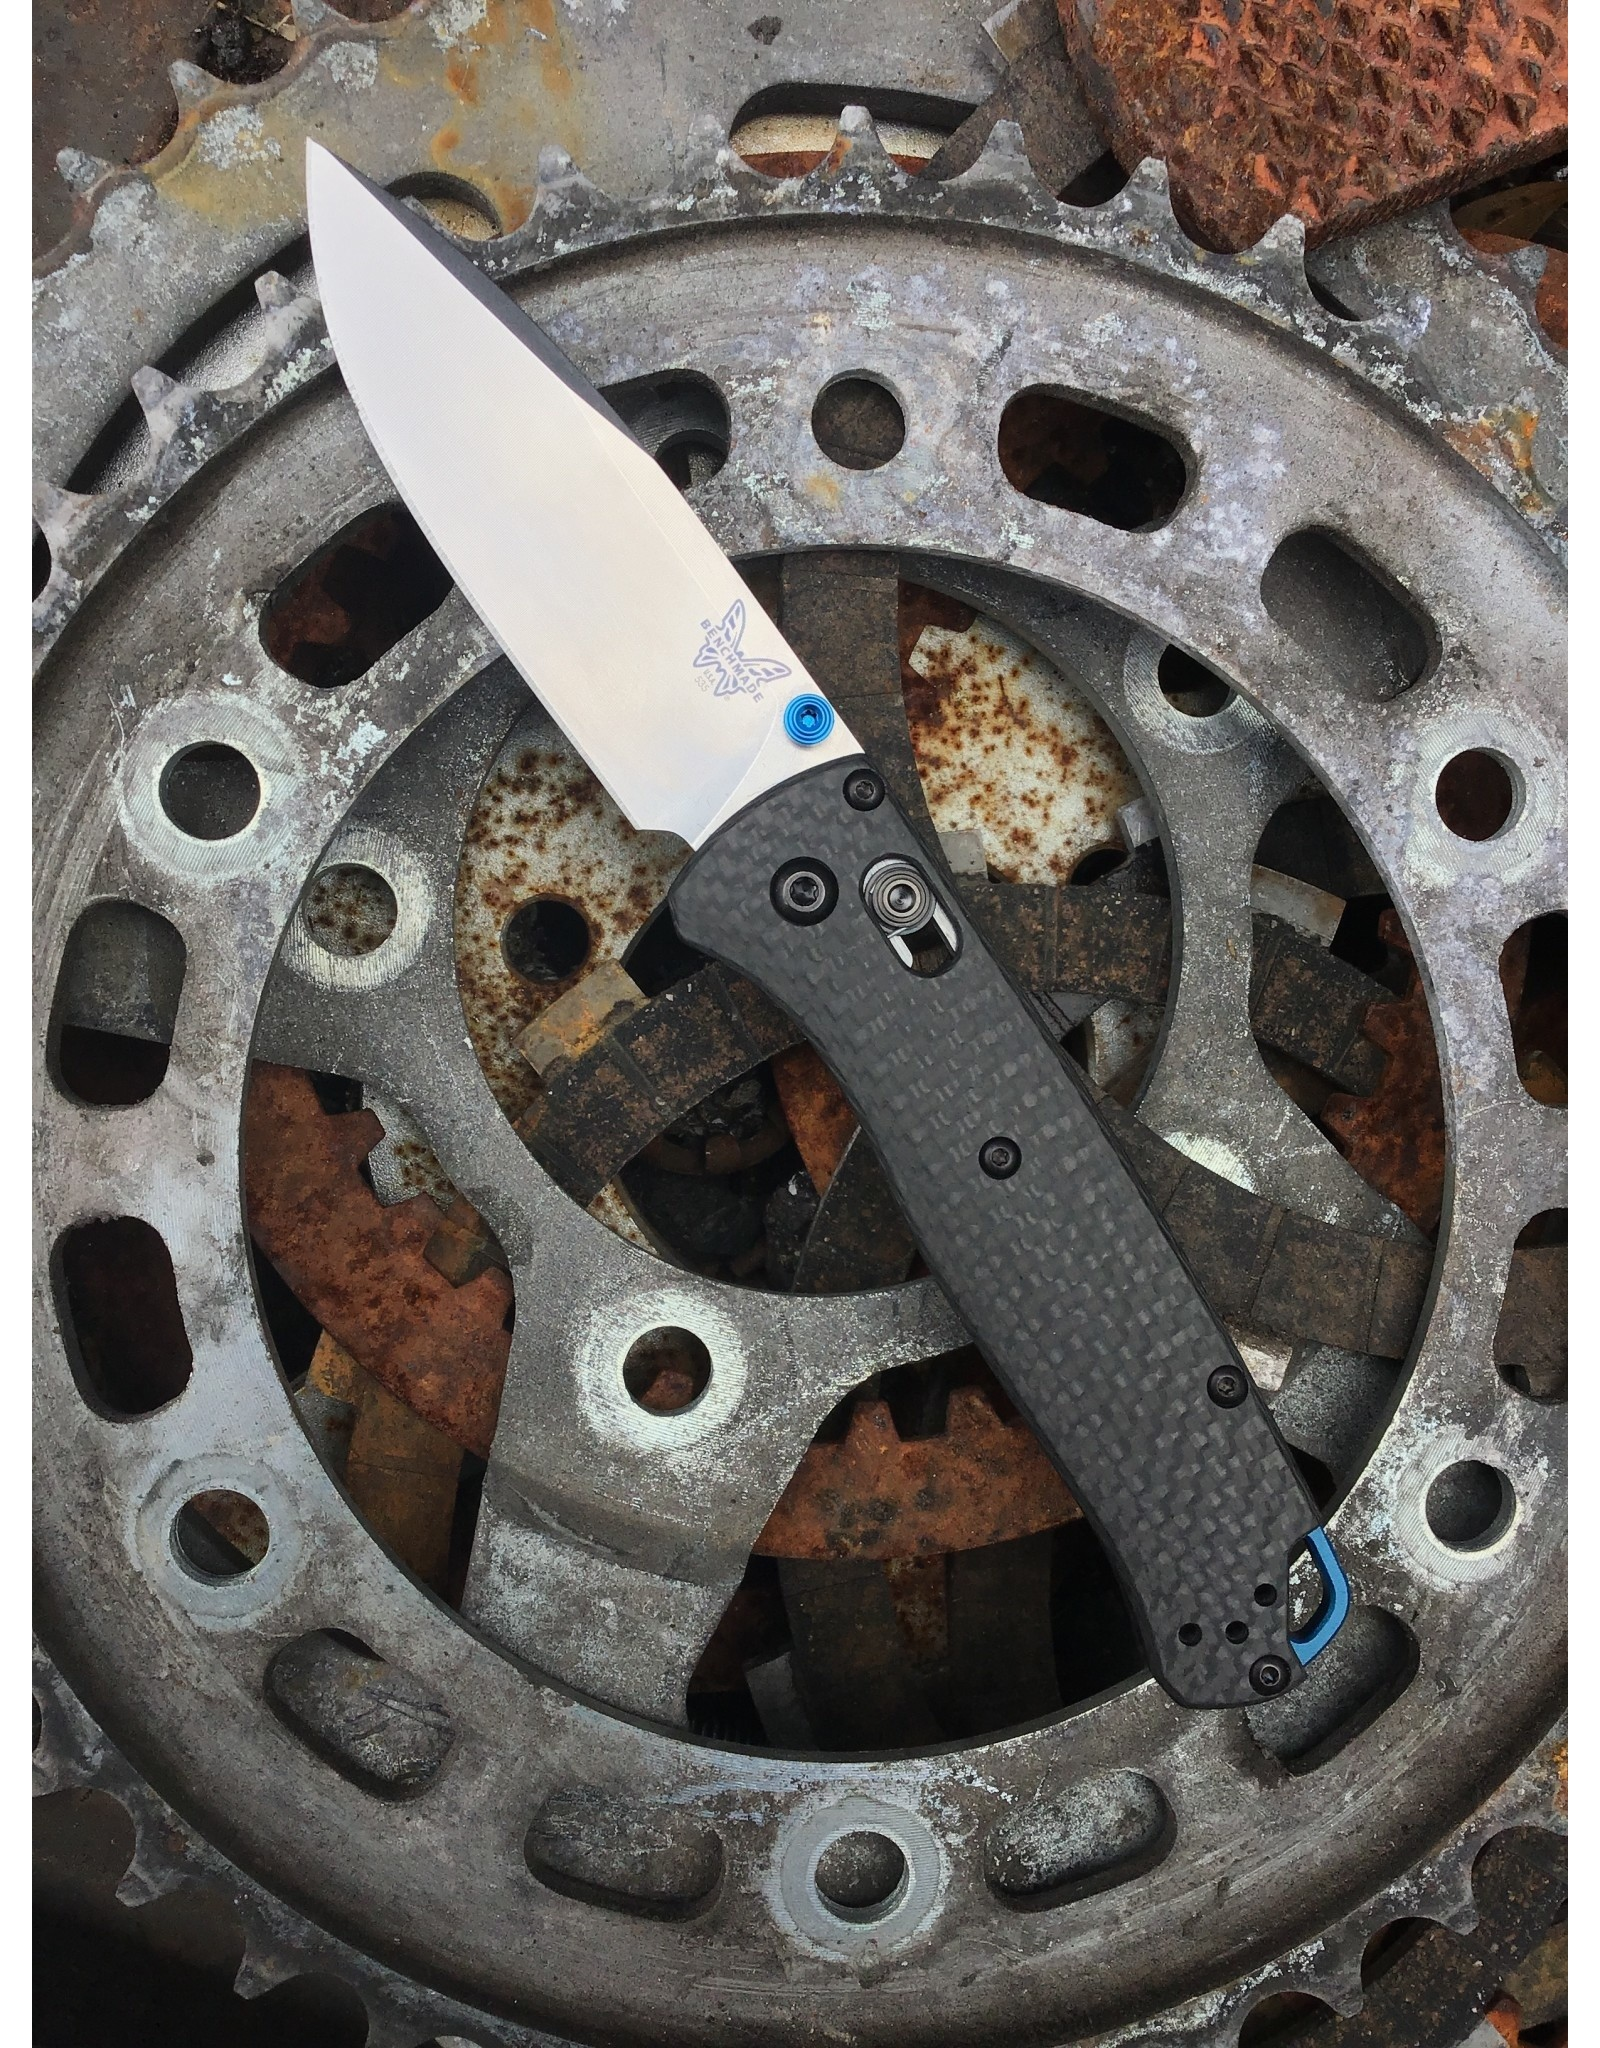 Benchmade Bugout 535-3 Carbon Fiber with S90V